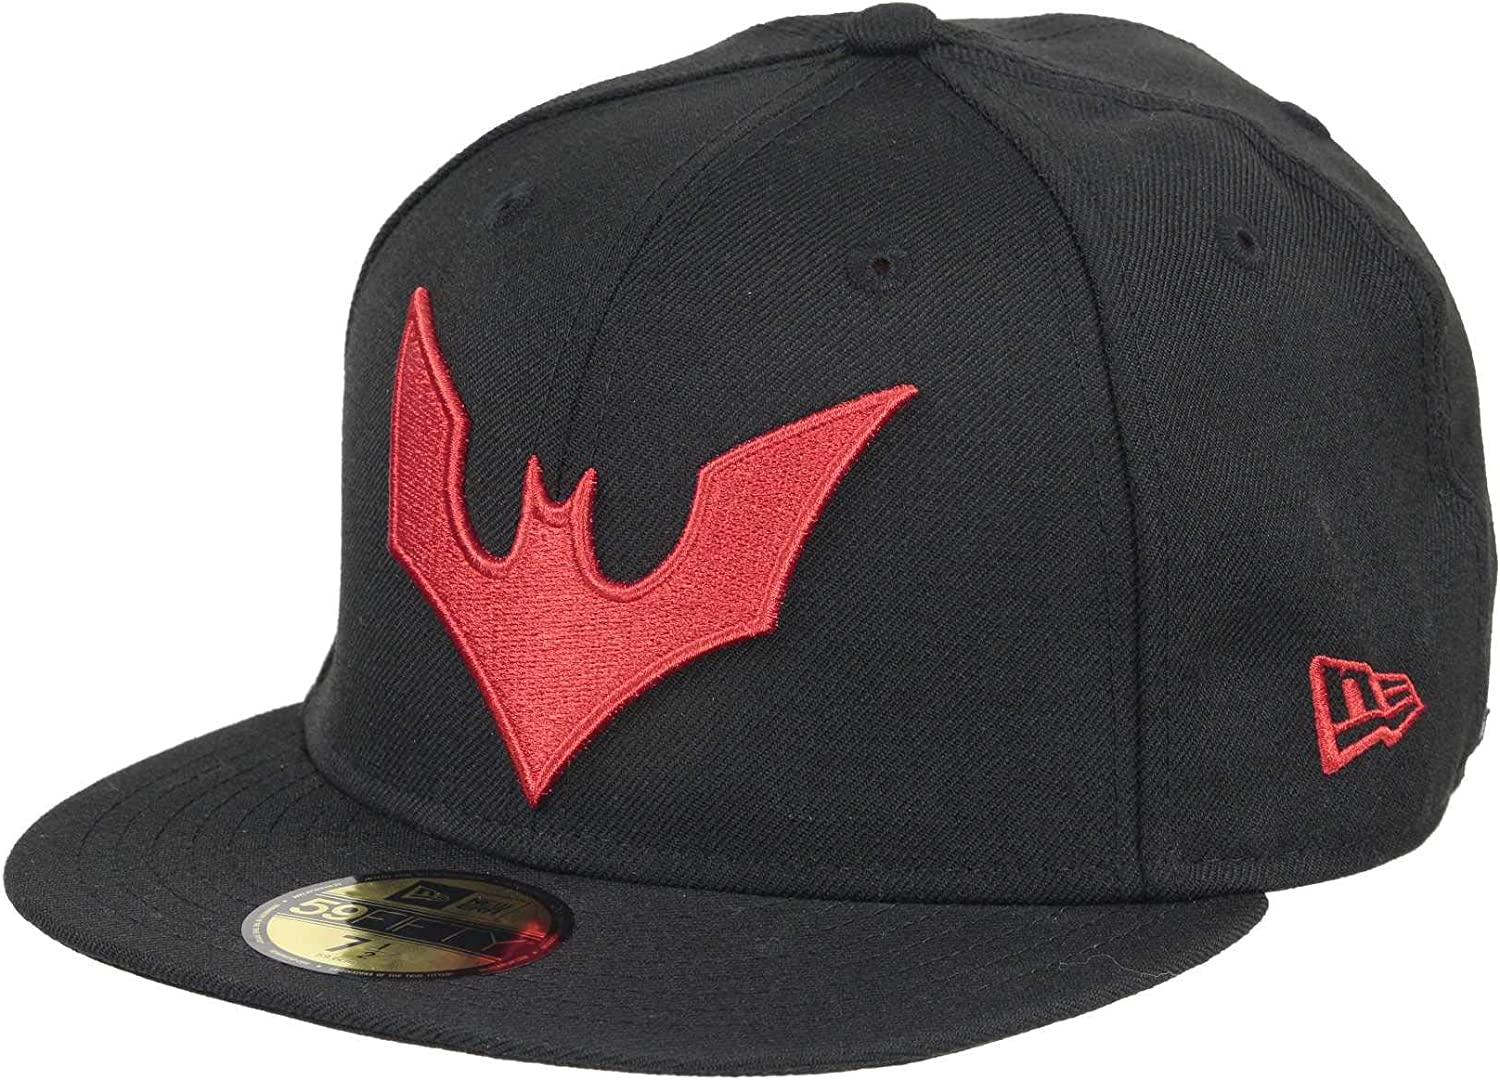 New Era Batman Edition Black Red 59Fifty Ranking TOP2 8-55cm Free shipping on posting reviews S 7 Basecap - 6